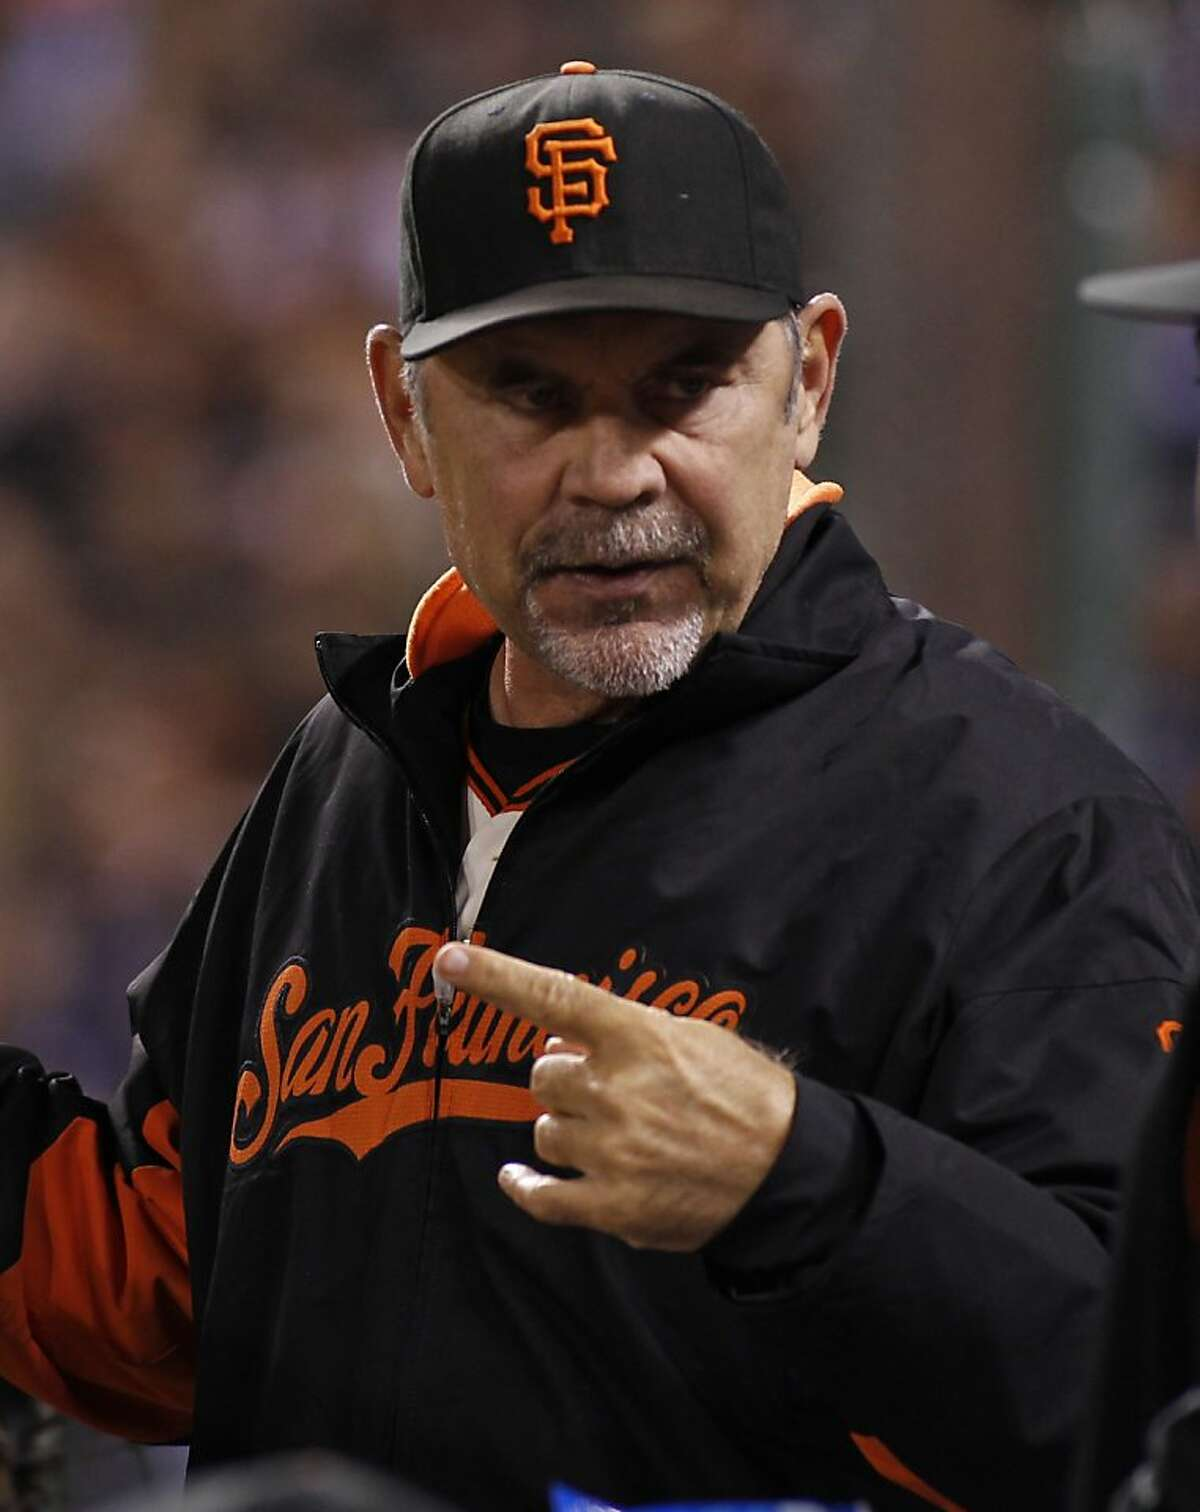 San Francisco Giants manager Bruce Bochy in the dugout during the eighth inning of a baseball game against the Los Angeles Dodgers in San Francisco, Thursday, Sept. 26, 2013.